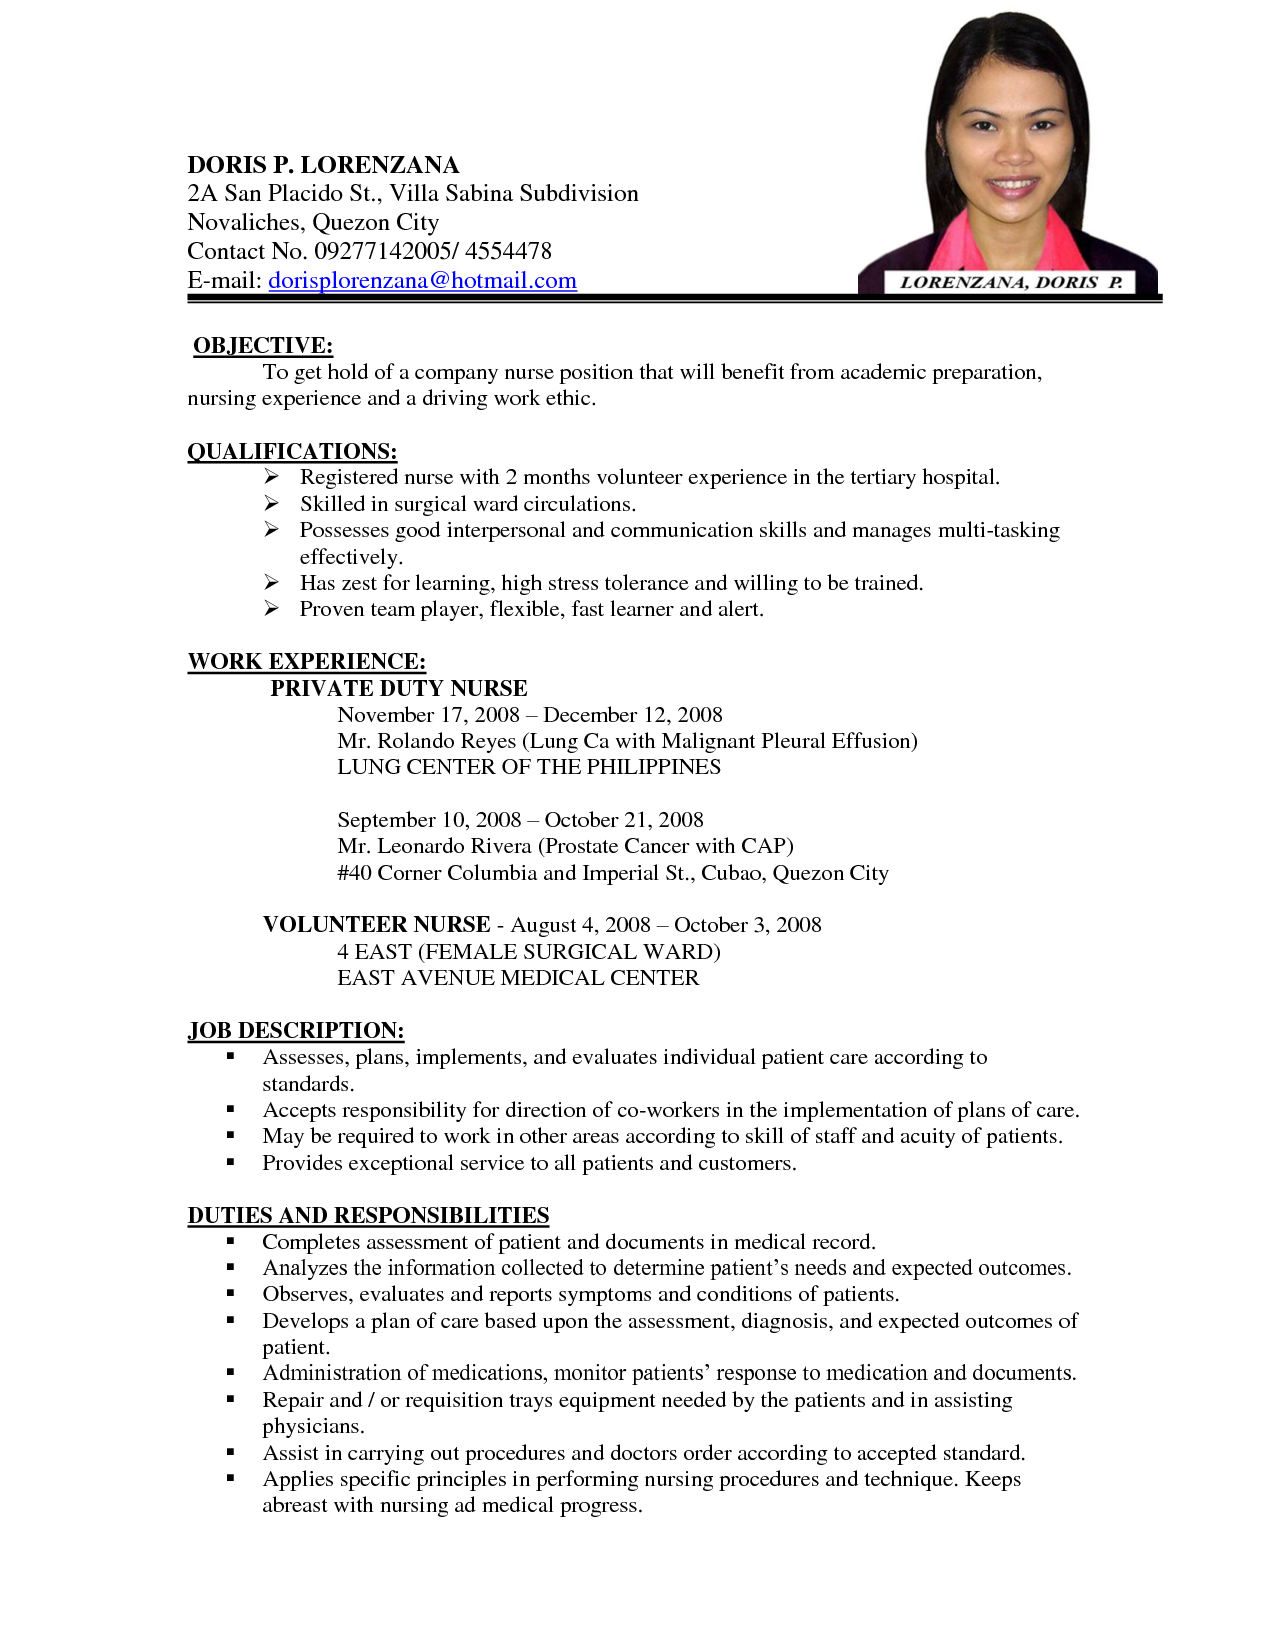 Nurse Resume Skills Nursing Curriculum Vitae Examples Google Search